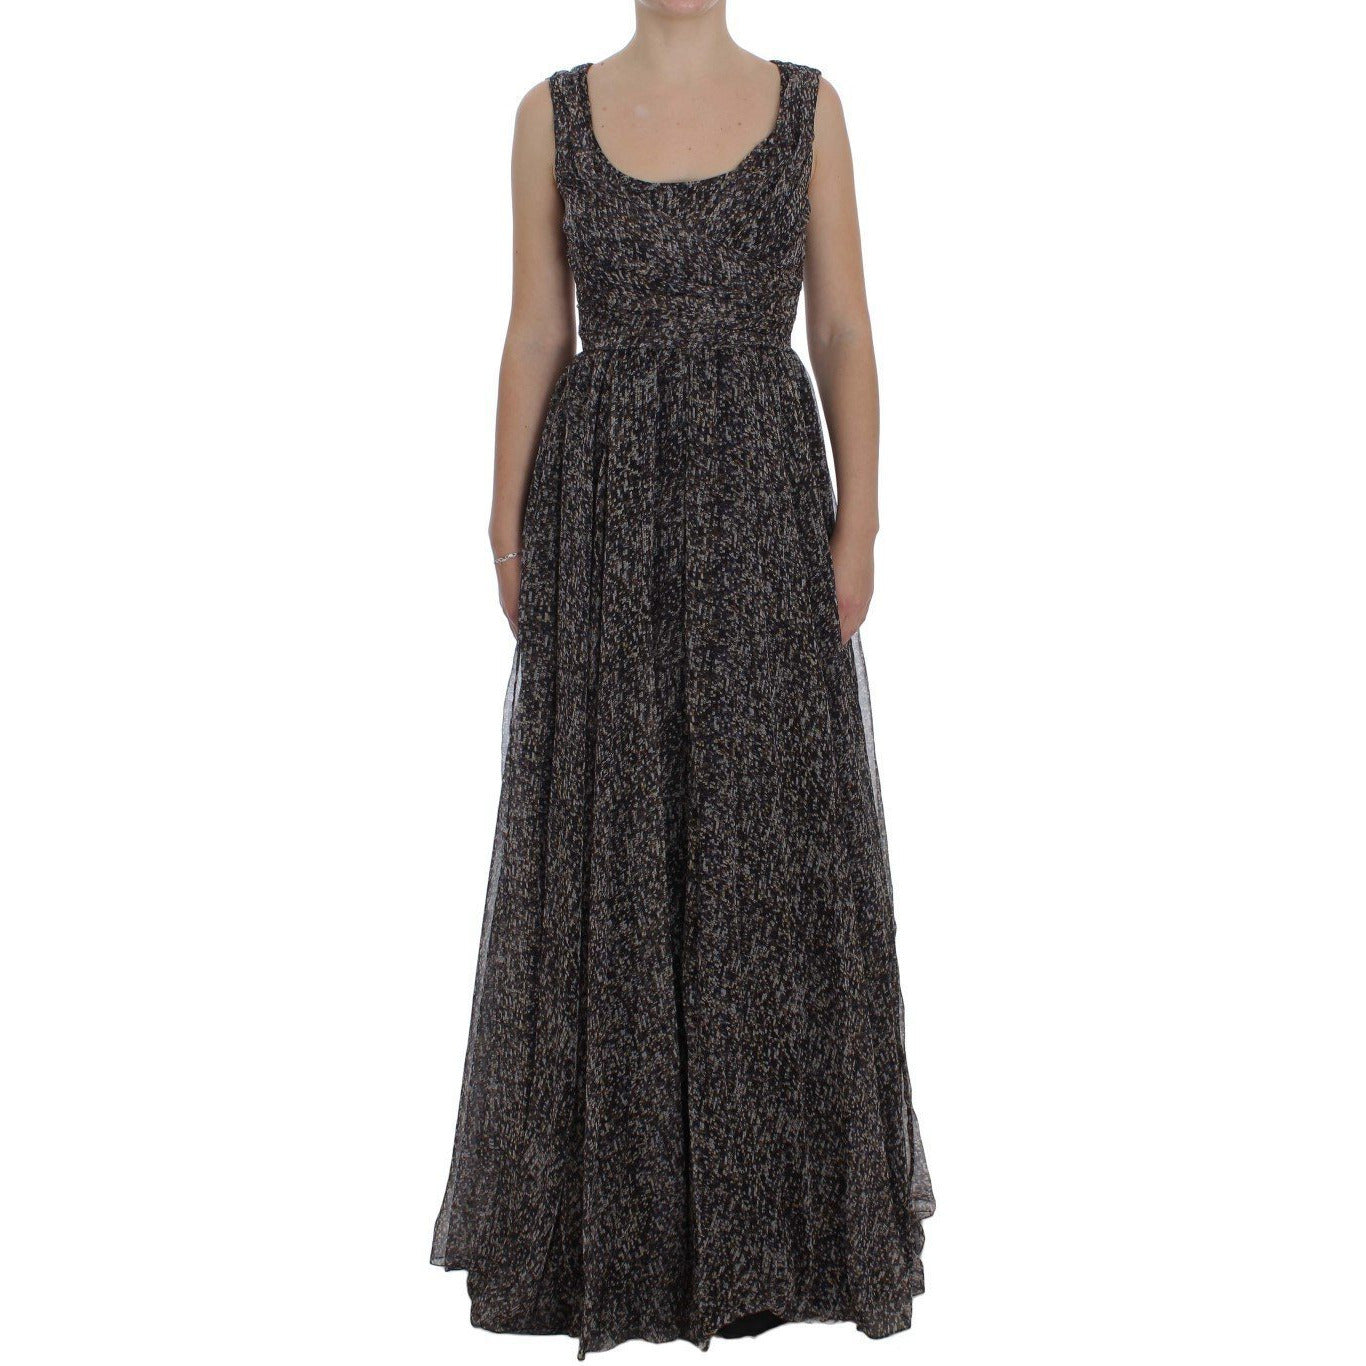 Dolce & Gabbana Dark Silk Shift Gown Full Length Dress